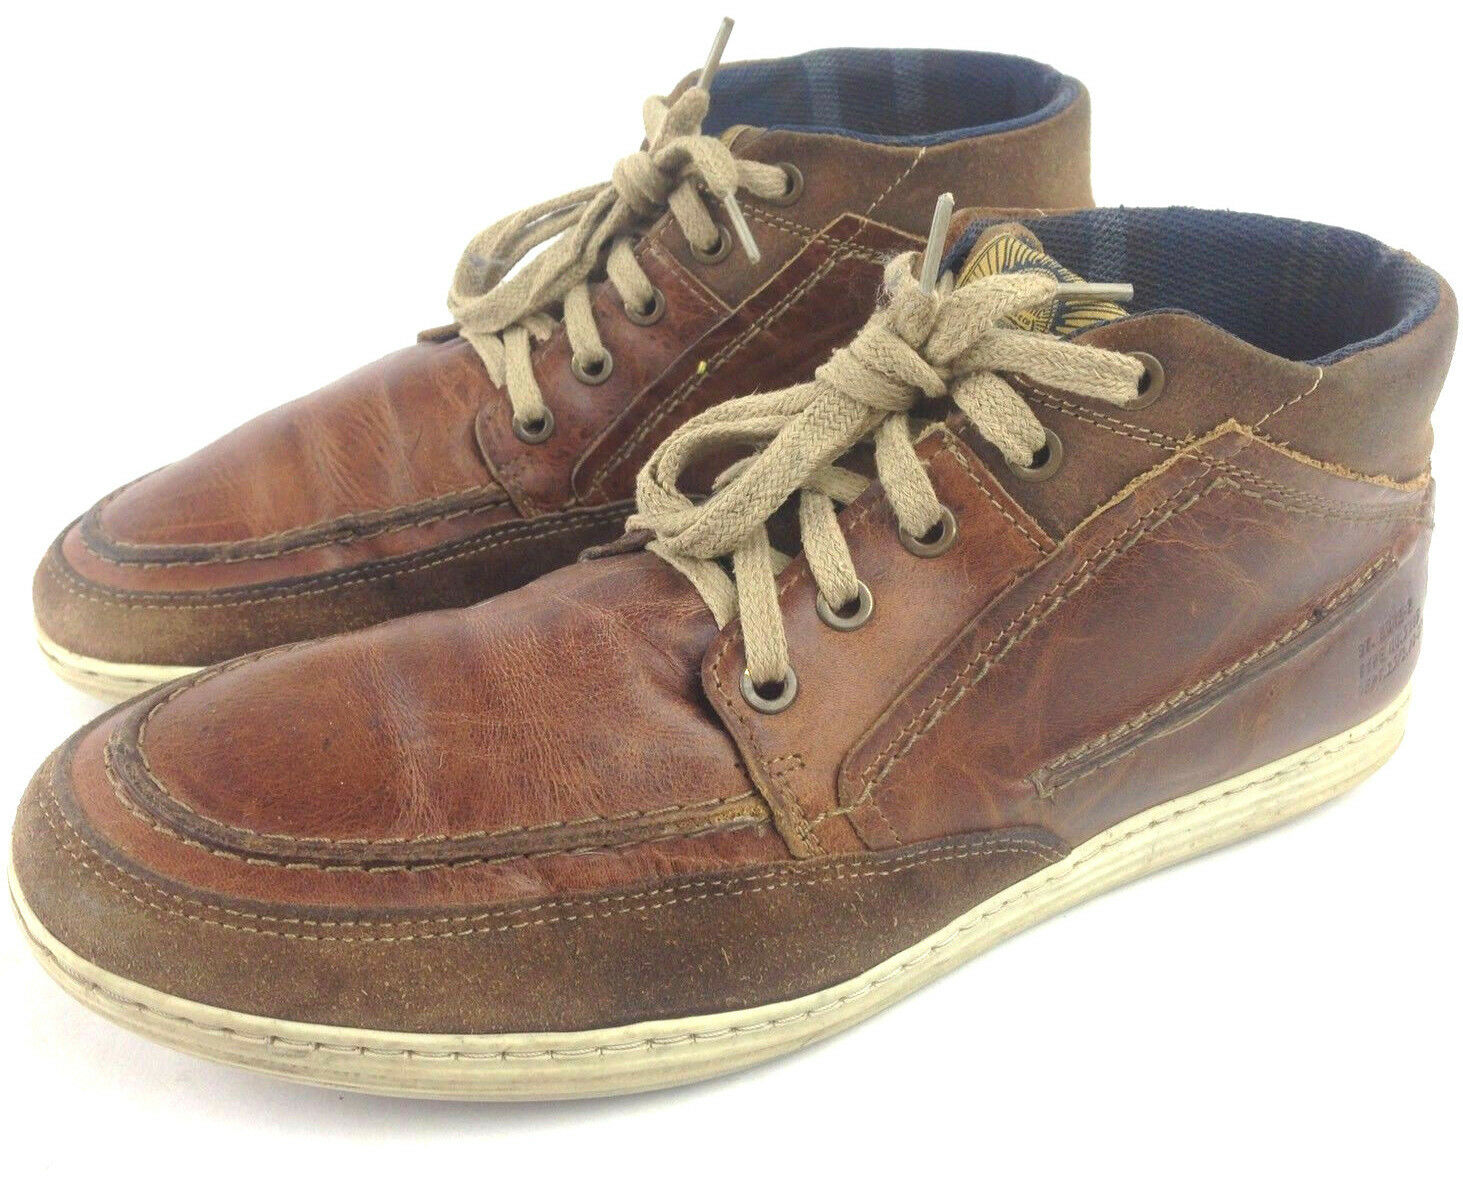 Bull Boxer Mens 10 Brown Distressed Leather Suede Fashion Hightop Casual Sneaker